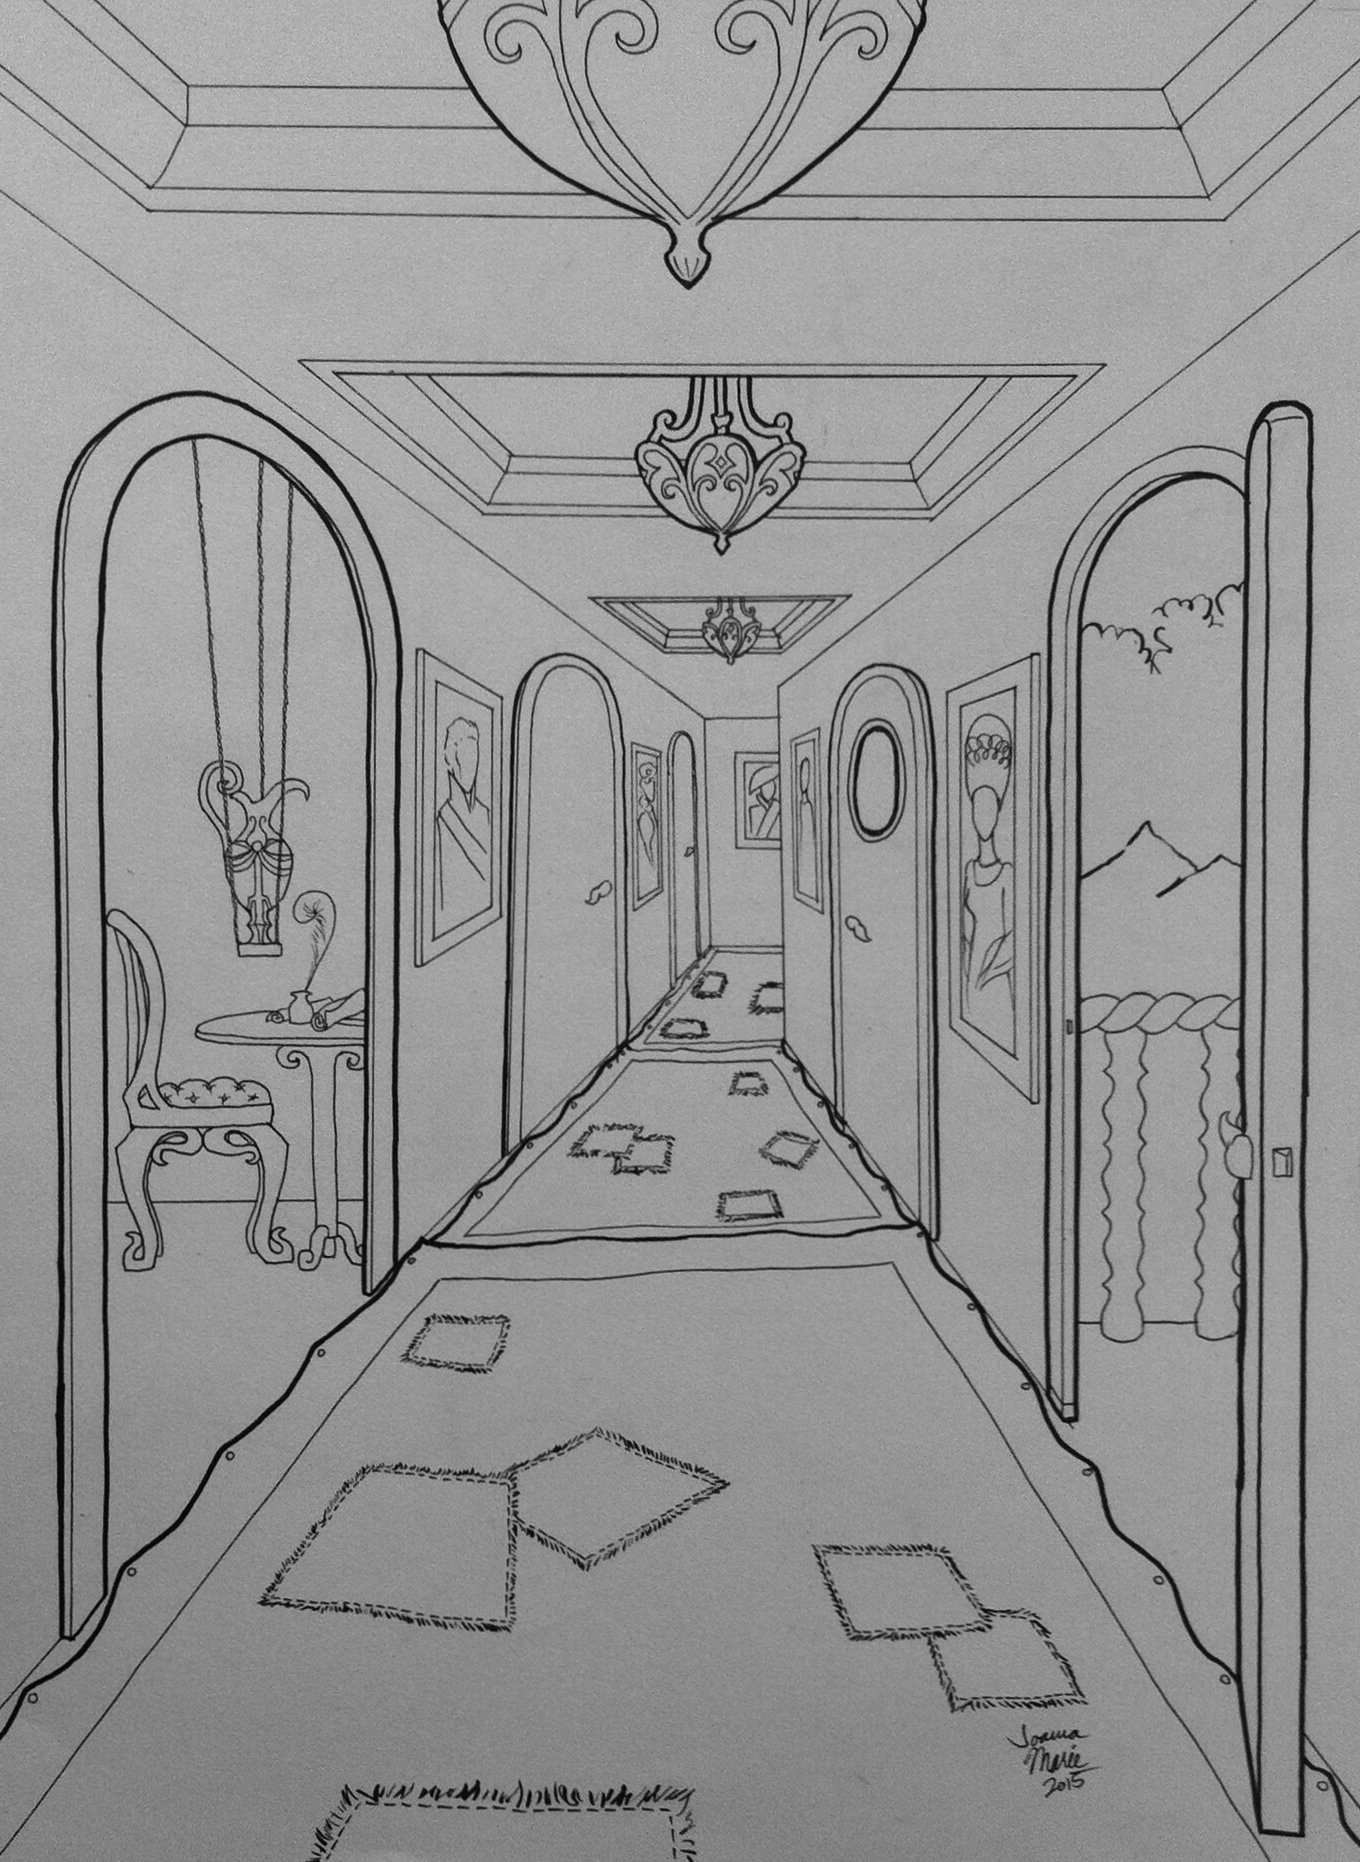 Storming Interior, 2015, 12x16, Pen and Ink